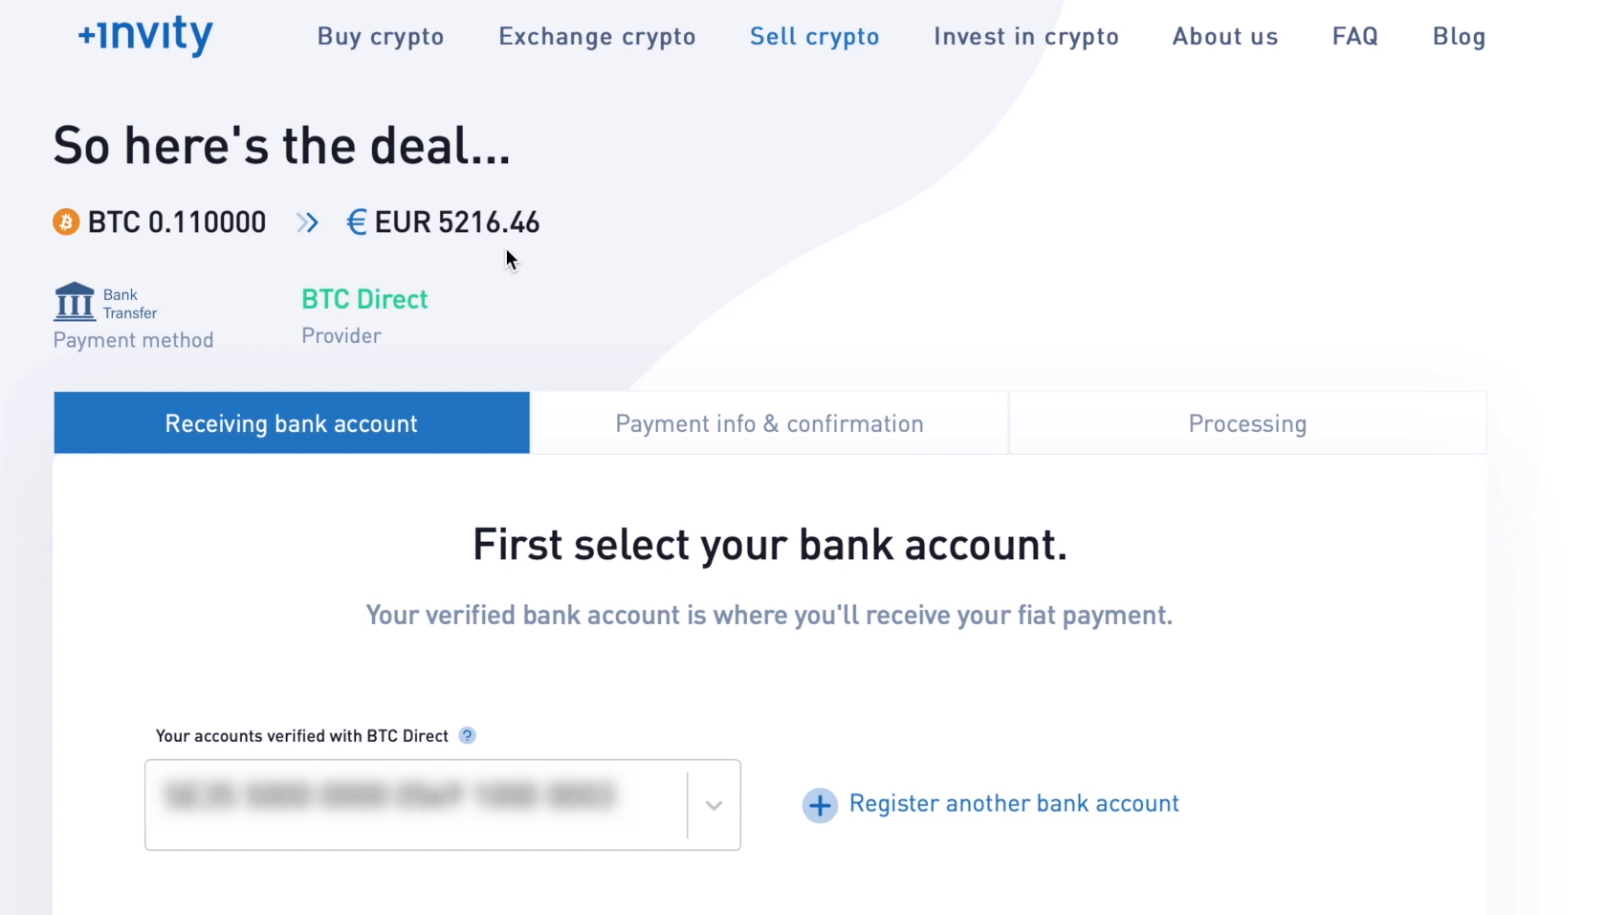 Select the bank account you want to receive your cash into. You first need to verify your account, but you'll only need to do this during your first sale or when adding a new account.